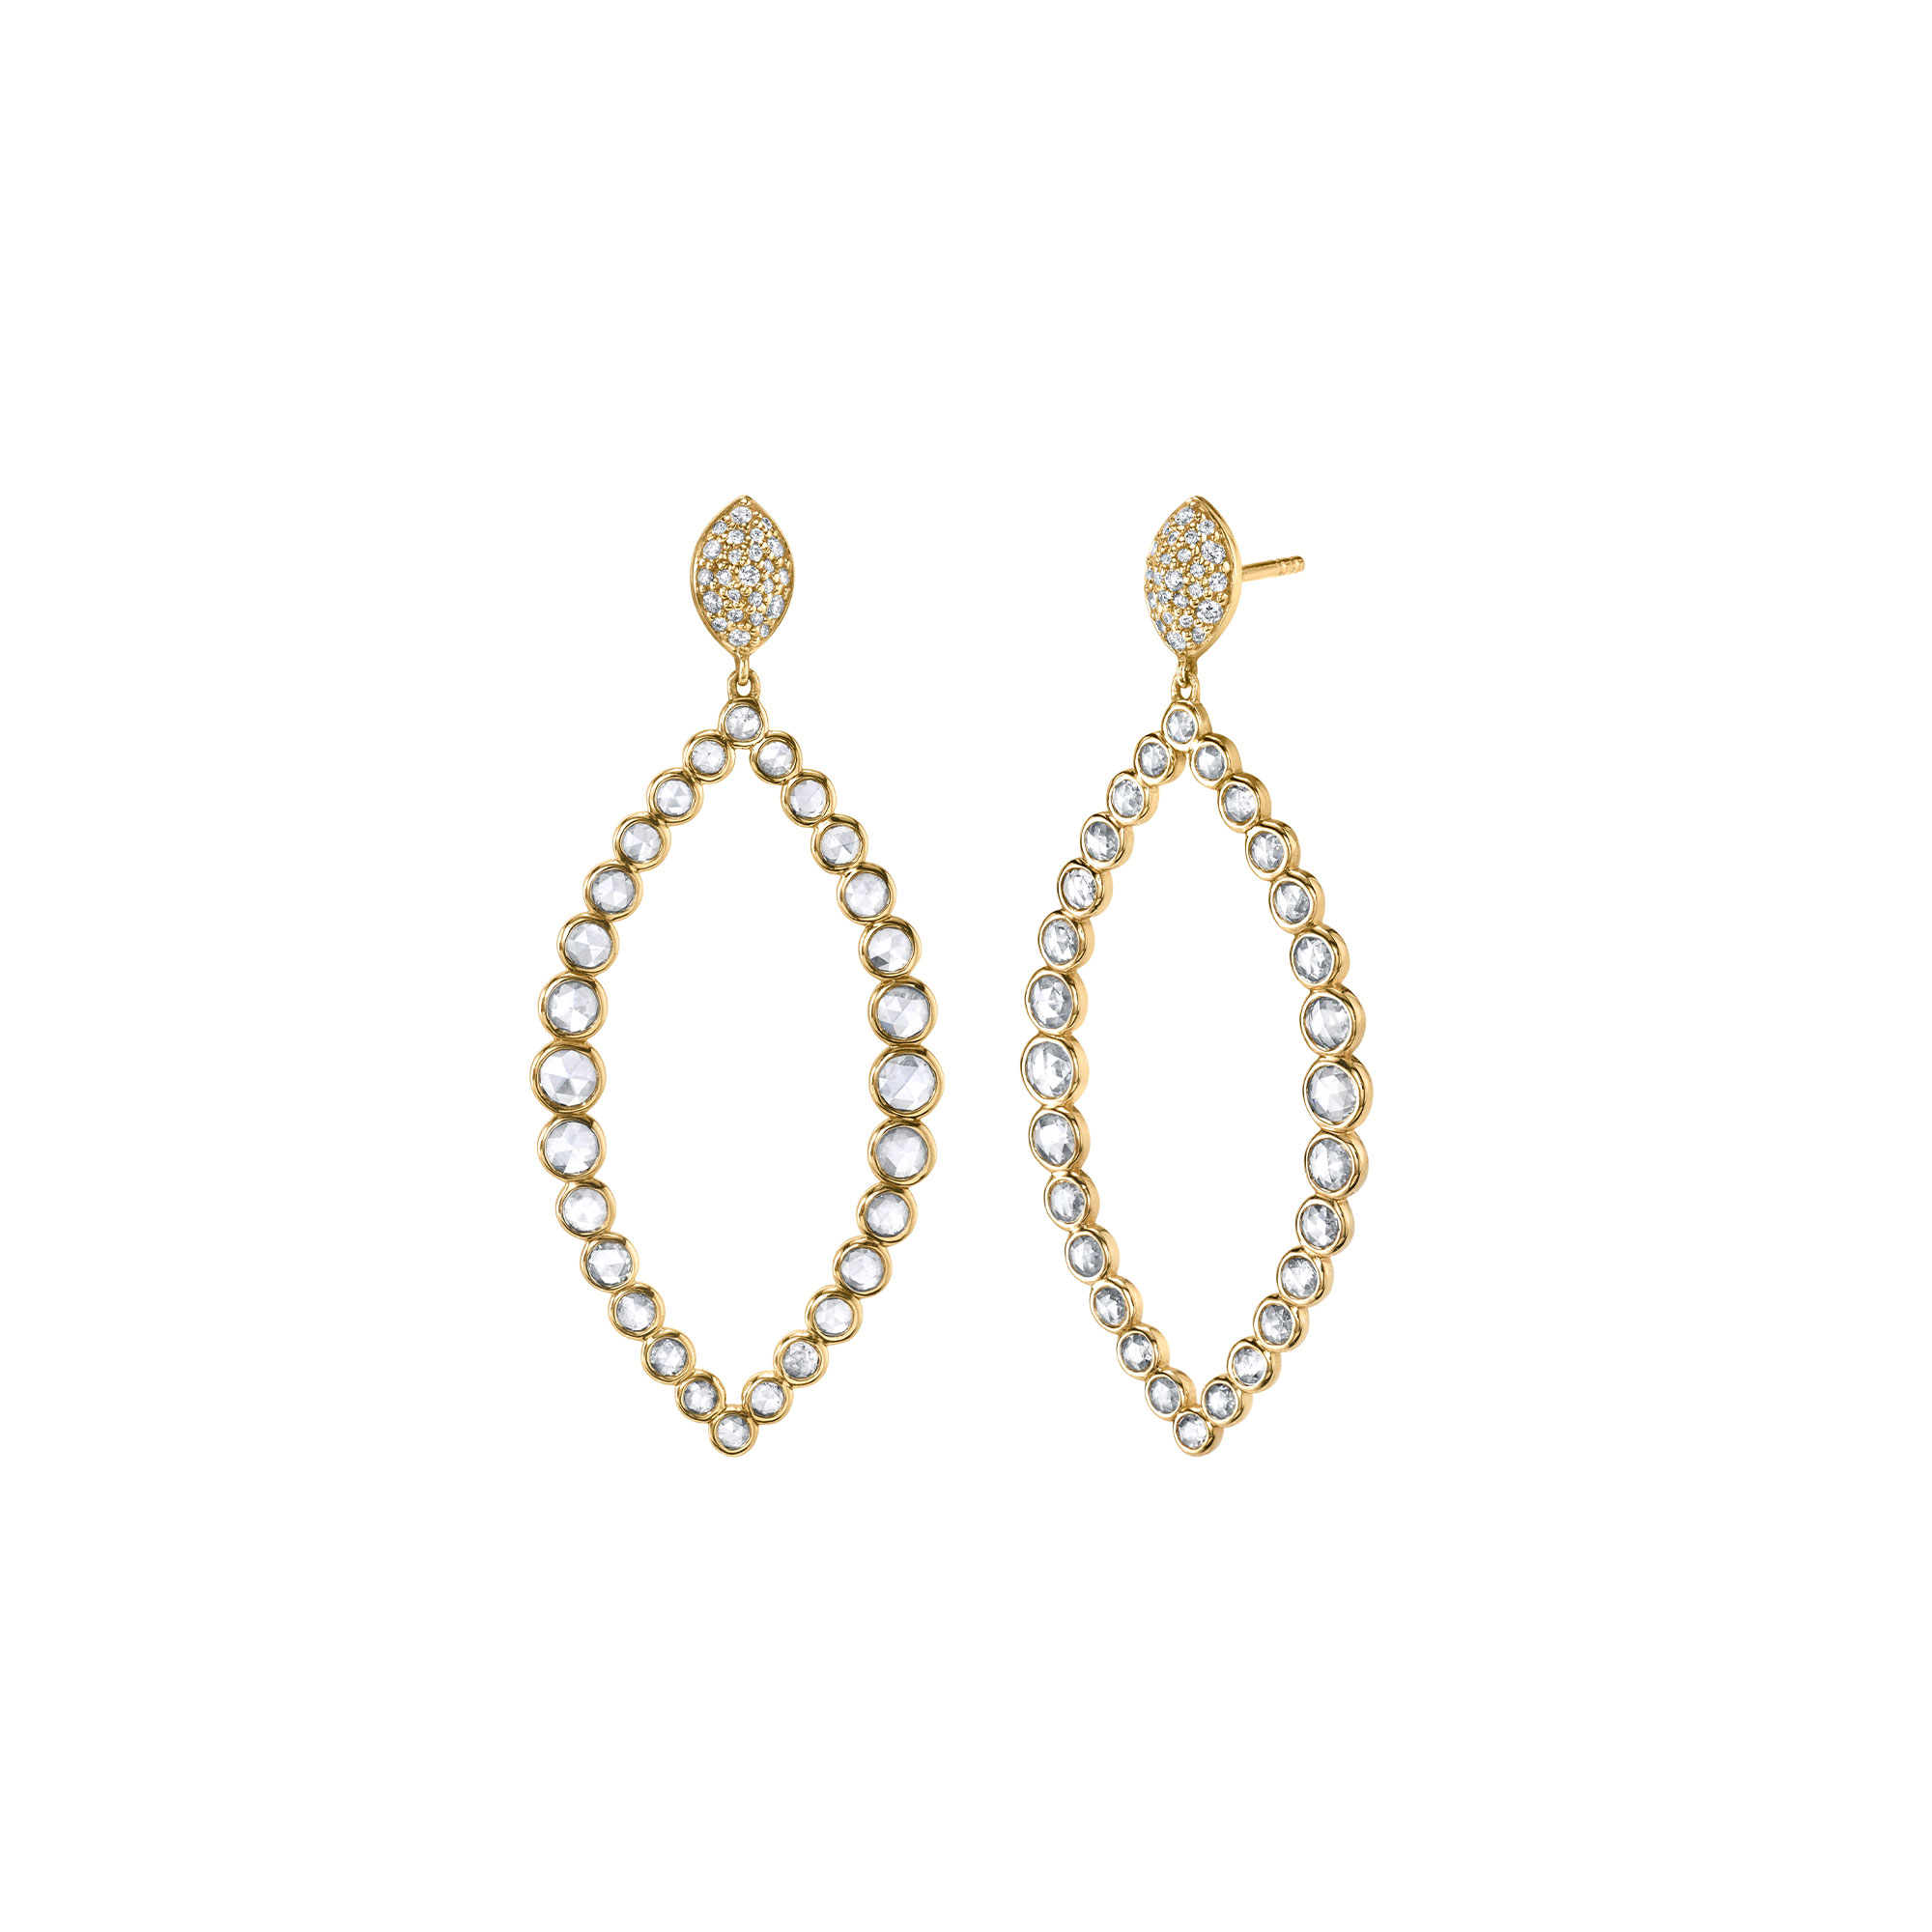 Sloane Street 18K Yellow Gold 1.87CTS  Diamonds Gold Earrings with Stones E220T-WDCB-Y